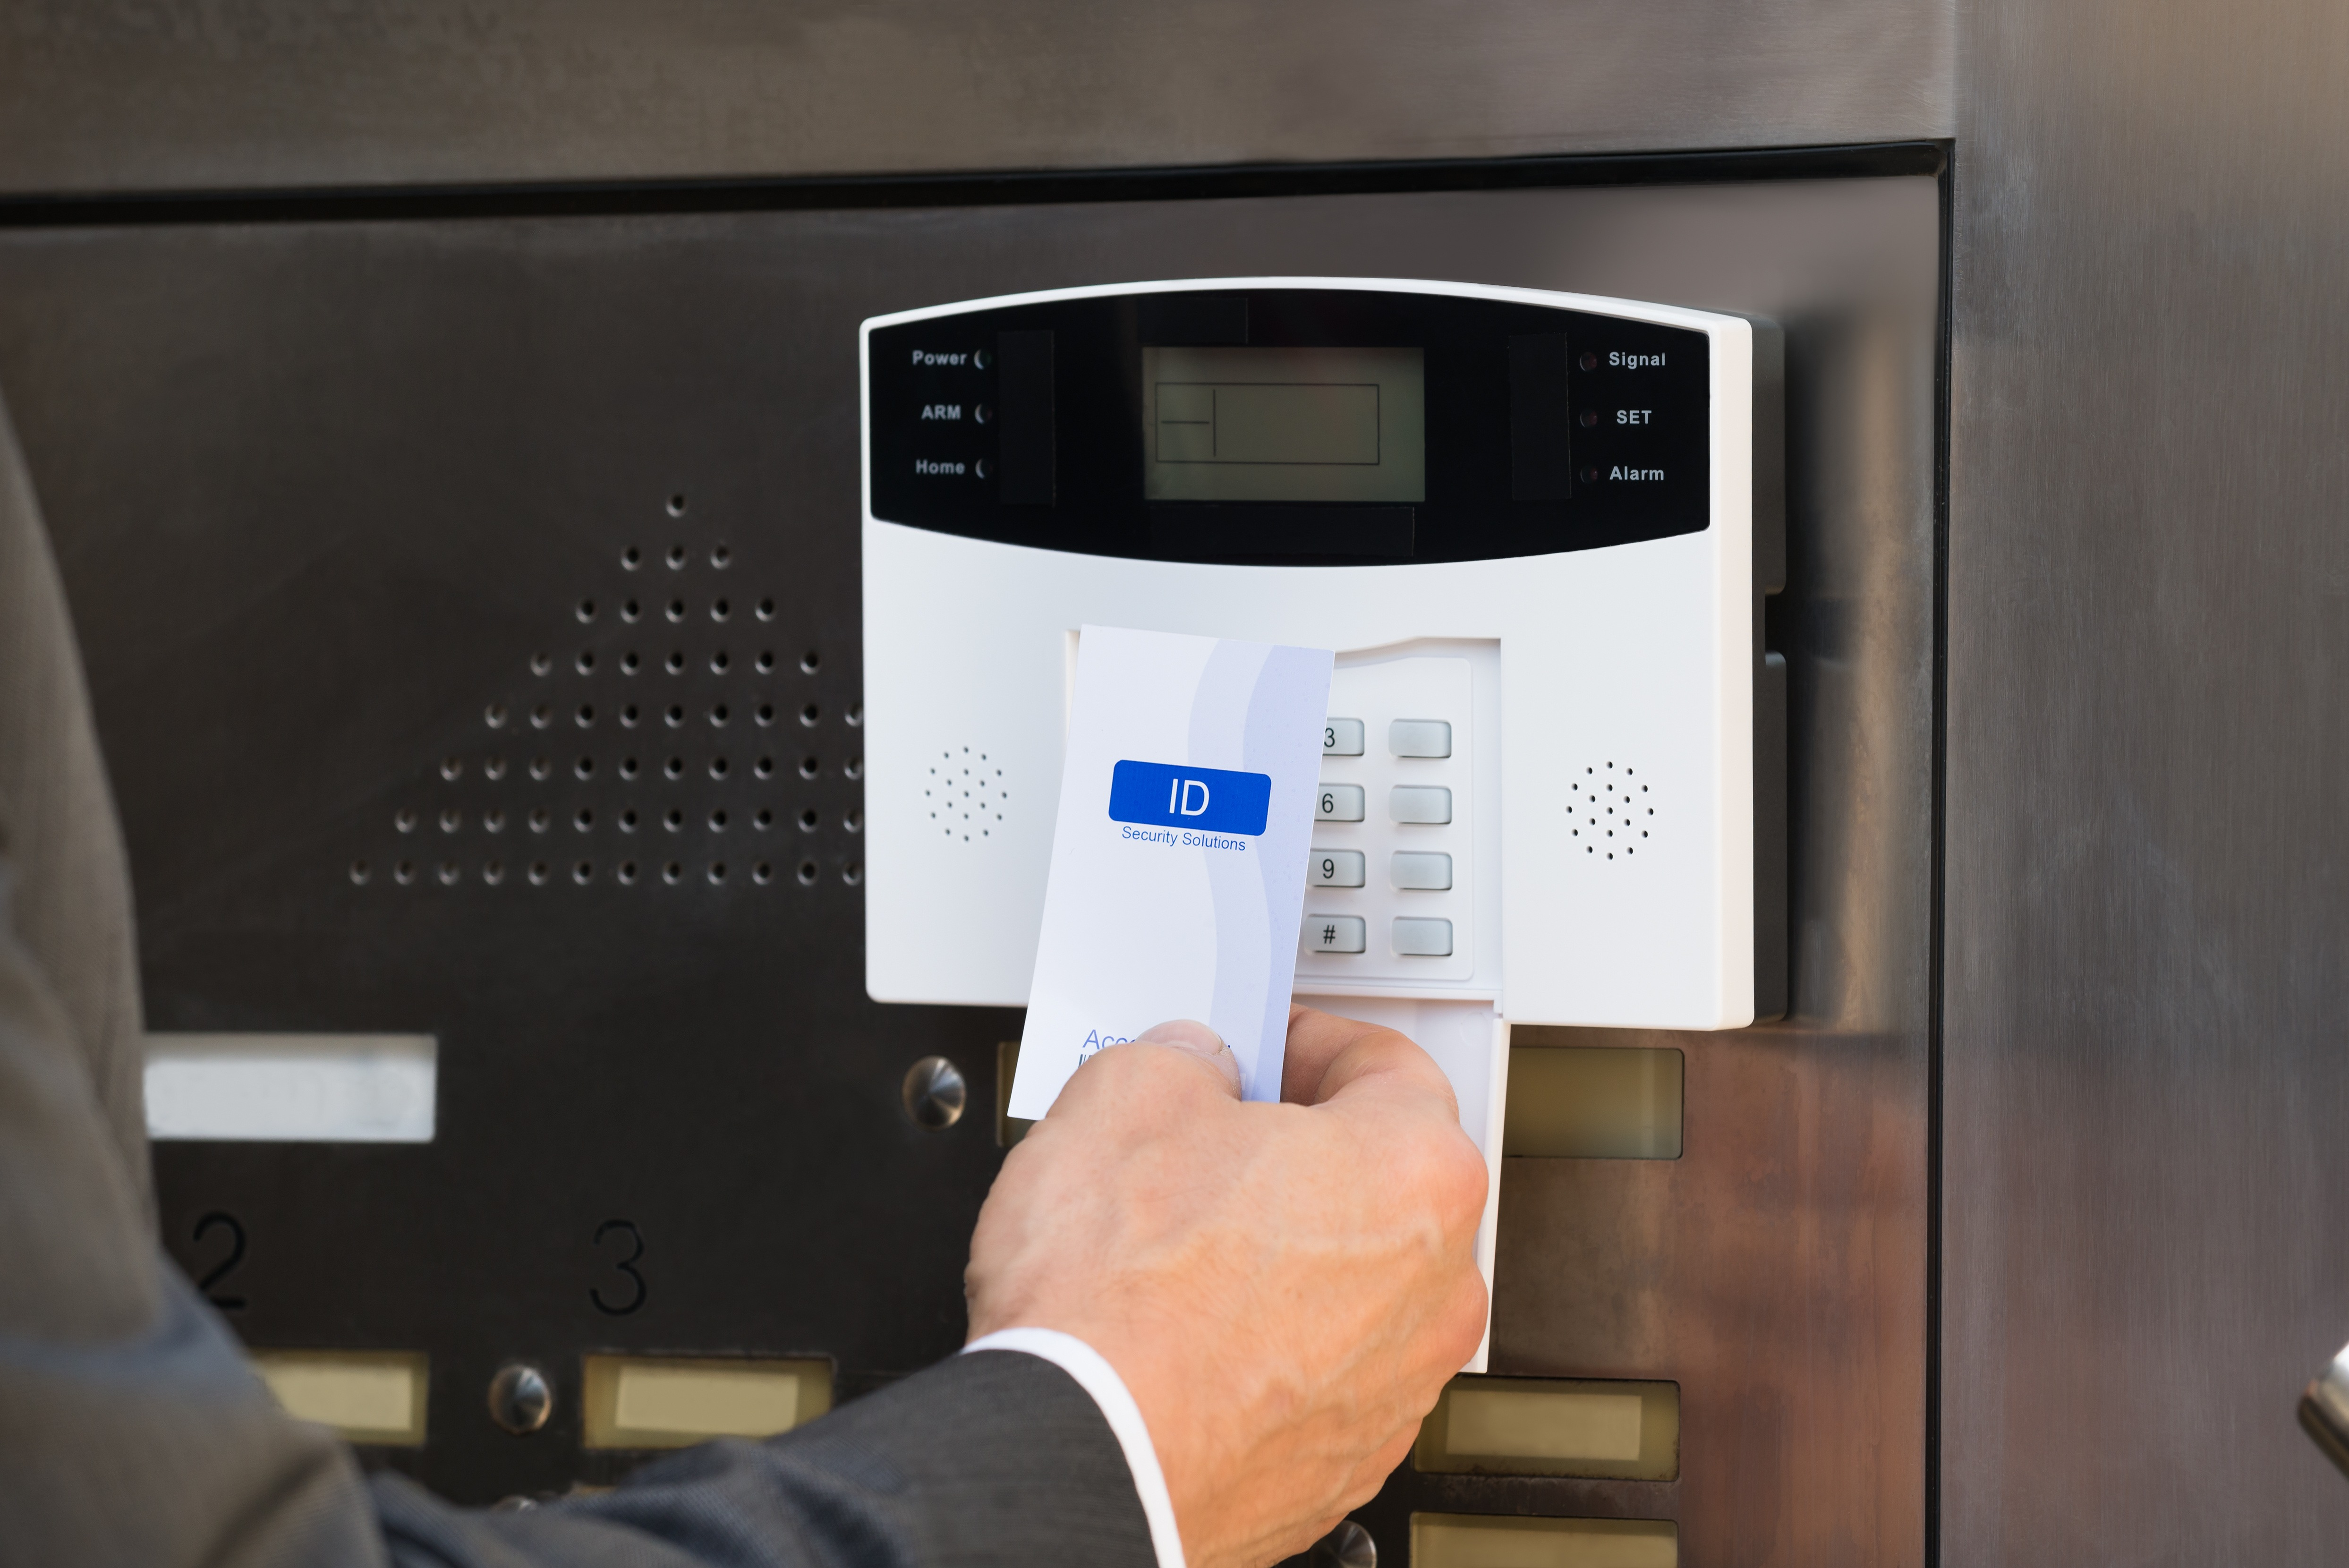 Access Control Systems in Vancouver with Thibault Gate and Access Control Systems